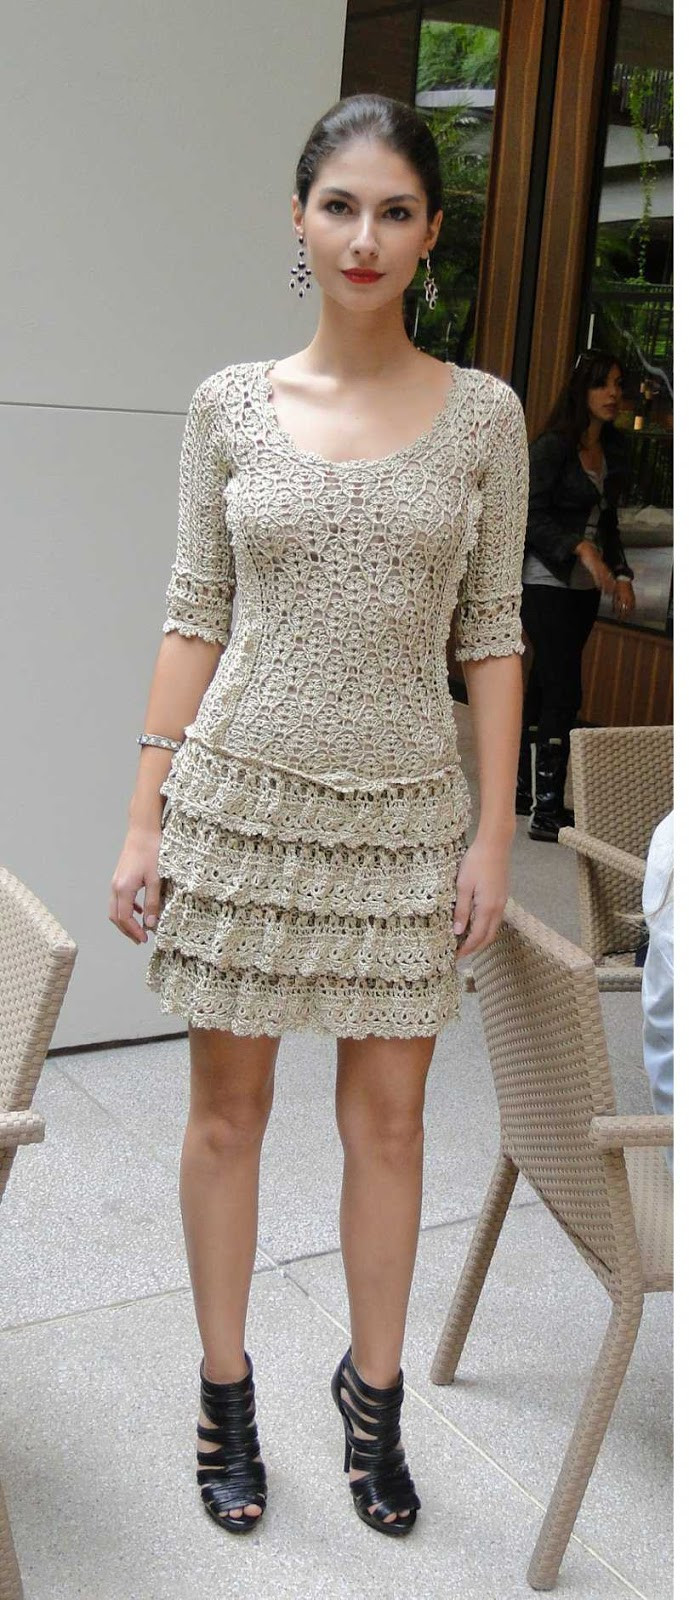 Awesome Crinochet Vanessa Montoro Crochet Dress Crochet Trim Dresses Of Attractive 47 Images Crochet Trim Dresses